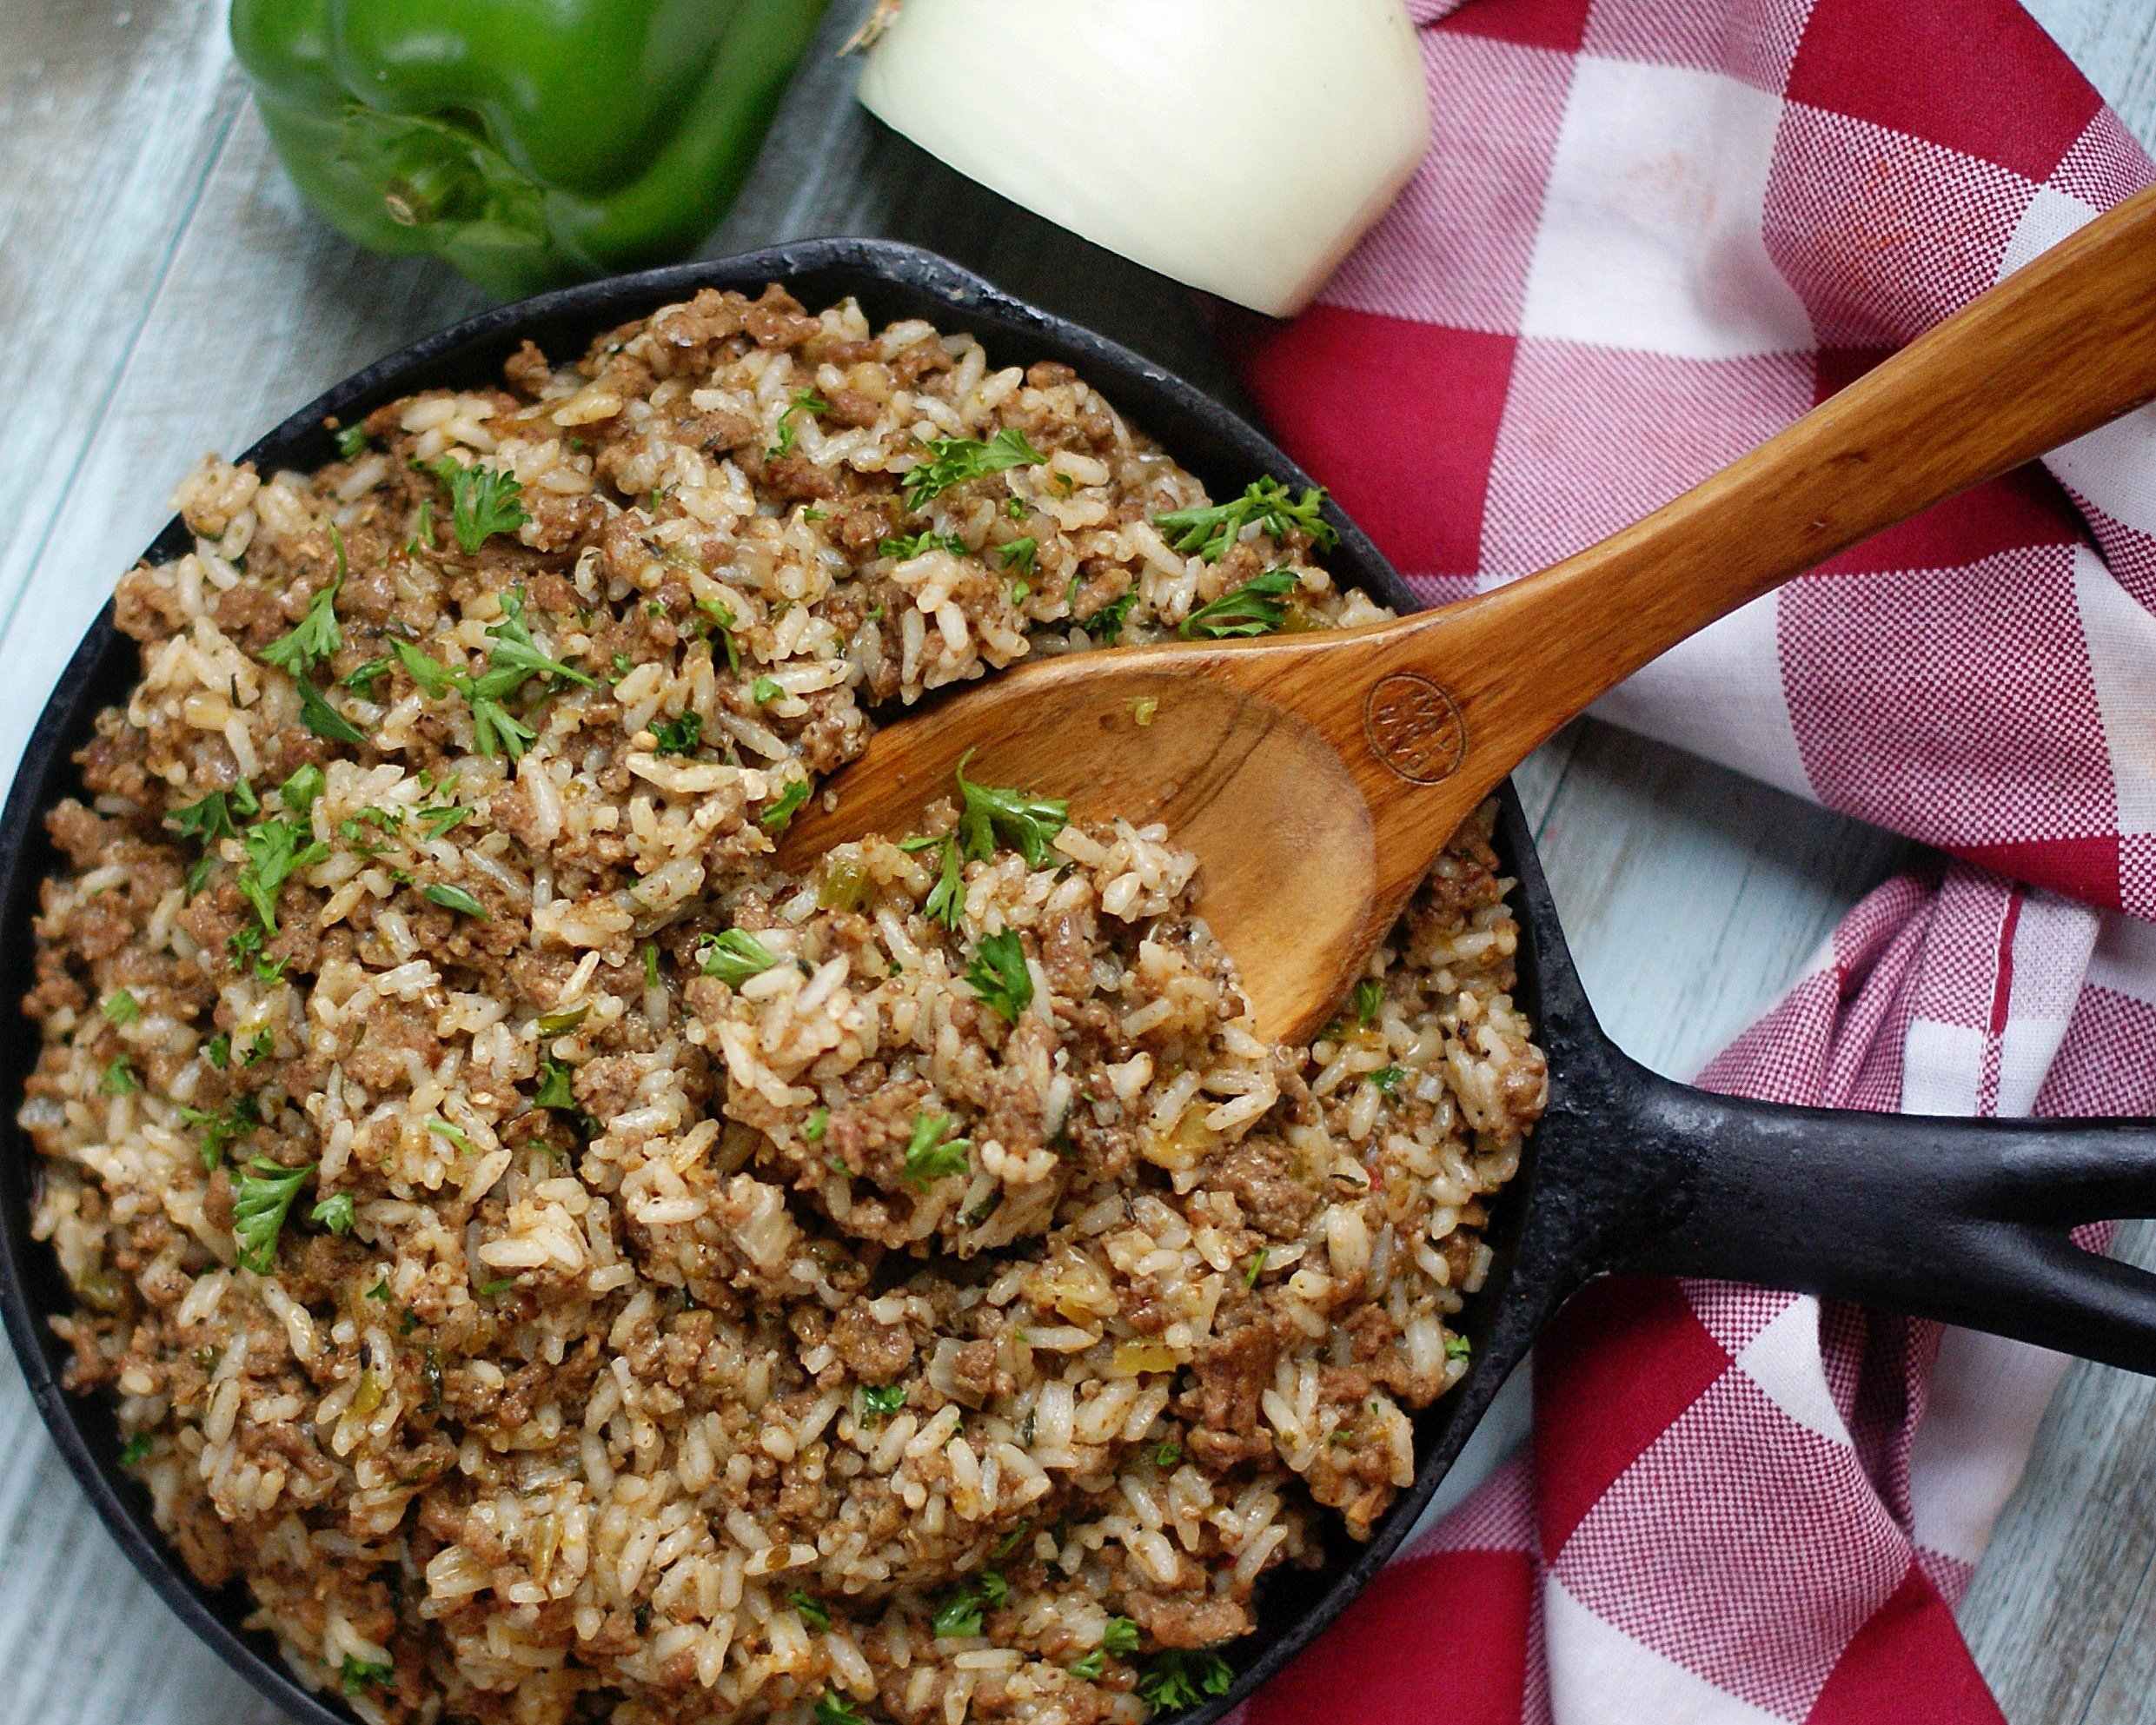 A finished skillet of Dirty Rice.